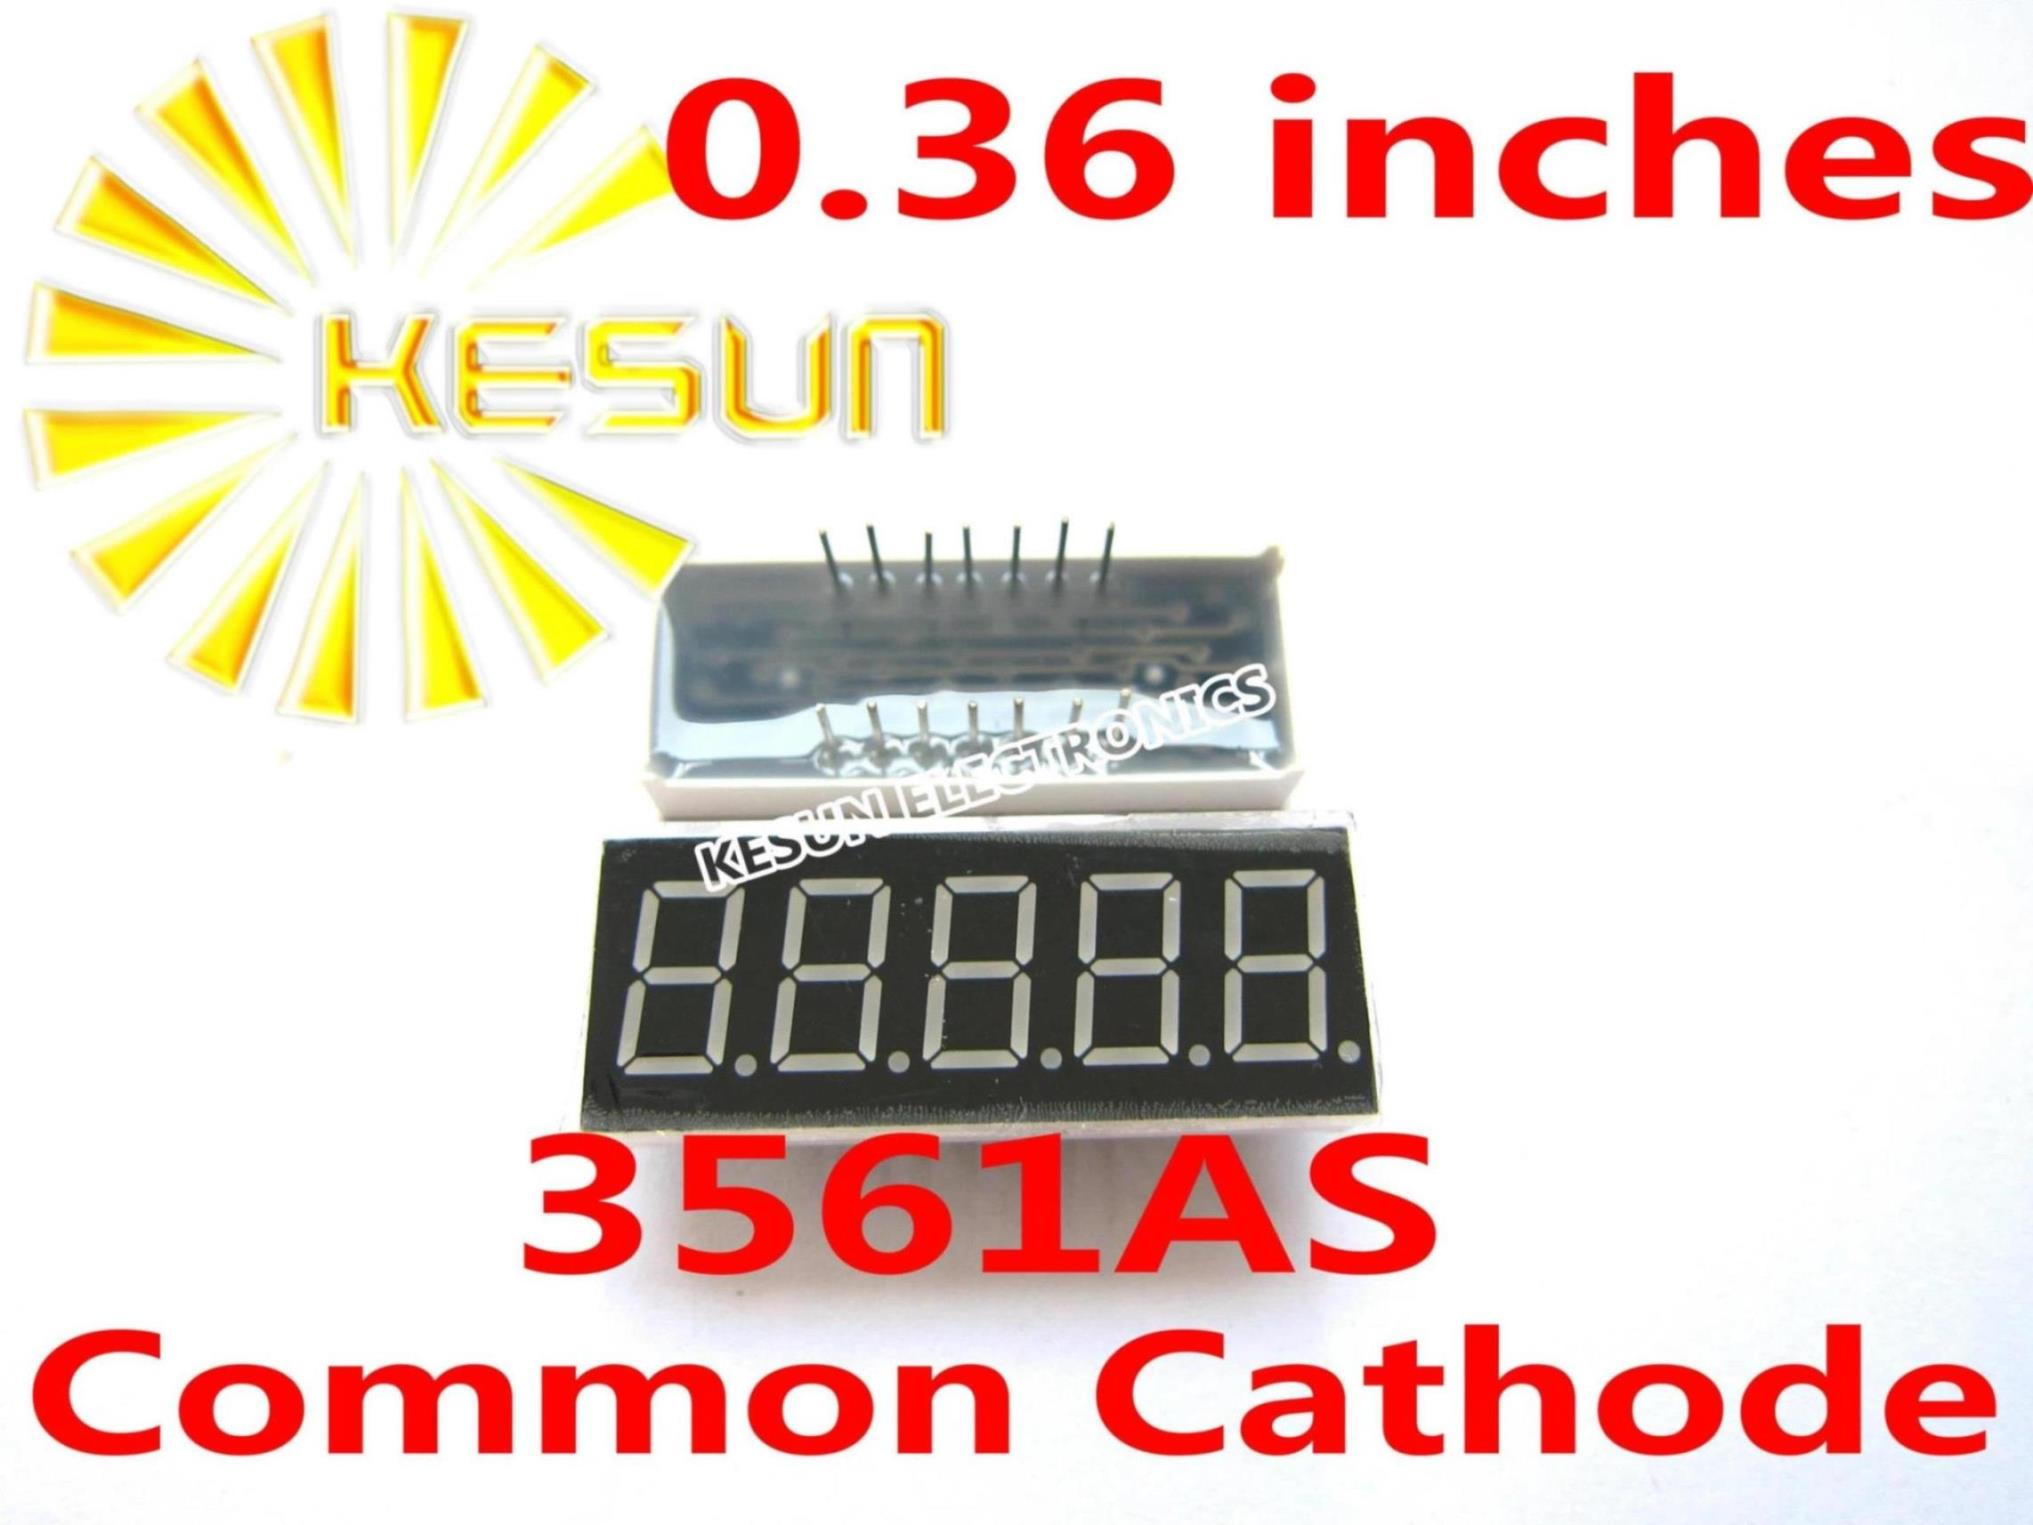 5PCS x 0.36 inches Red Common Cathode/Anode 5 Digital Tube 3561AS 3561BS LED Display Module